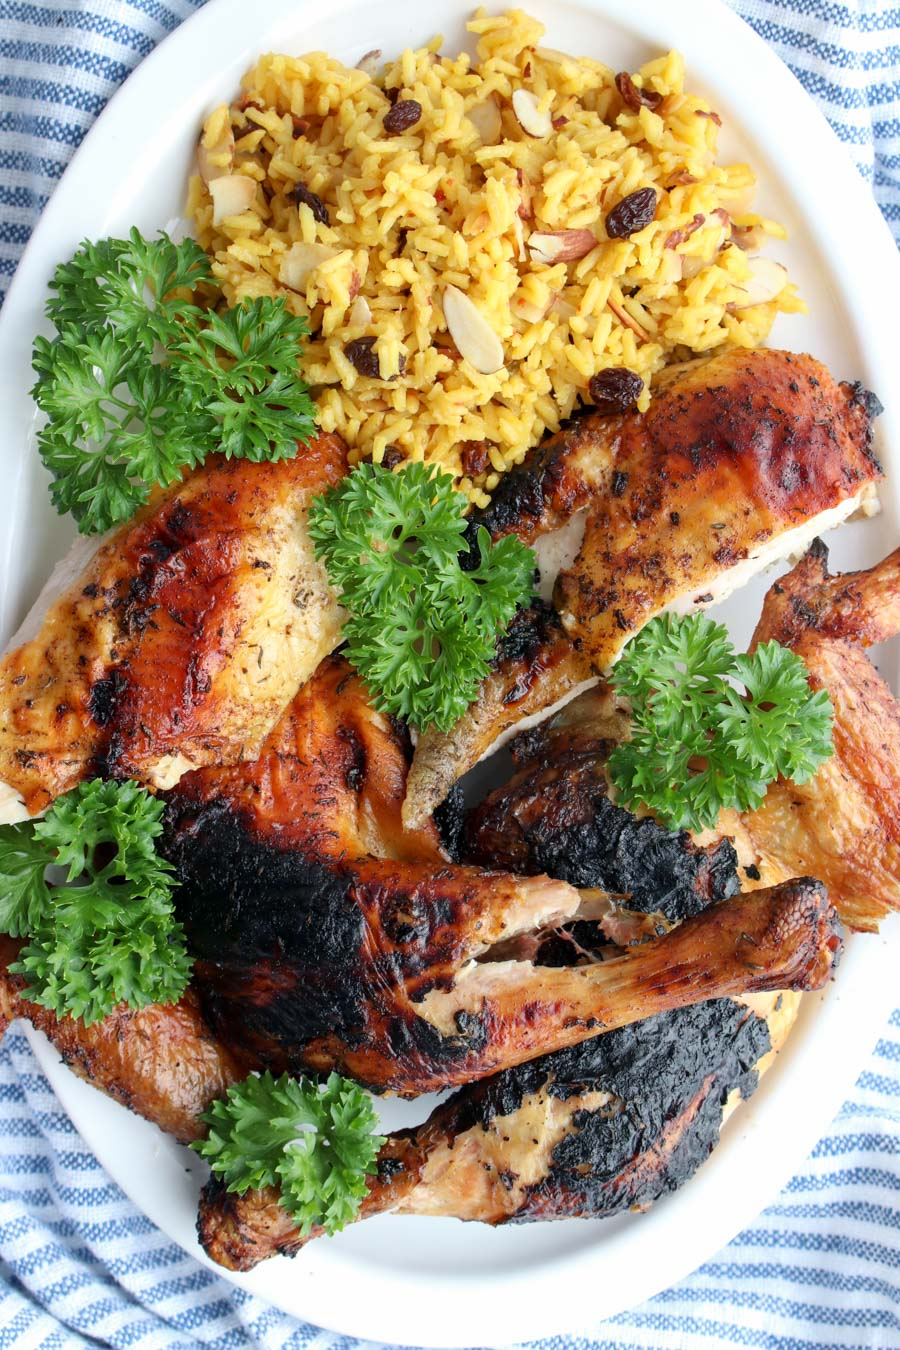 grilled chicken on a platter with yellow rice